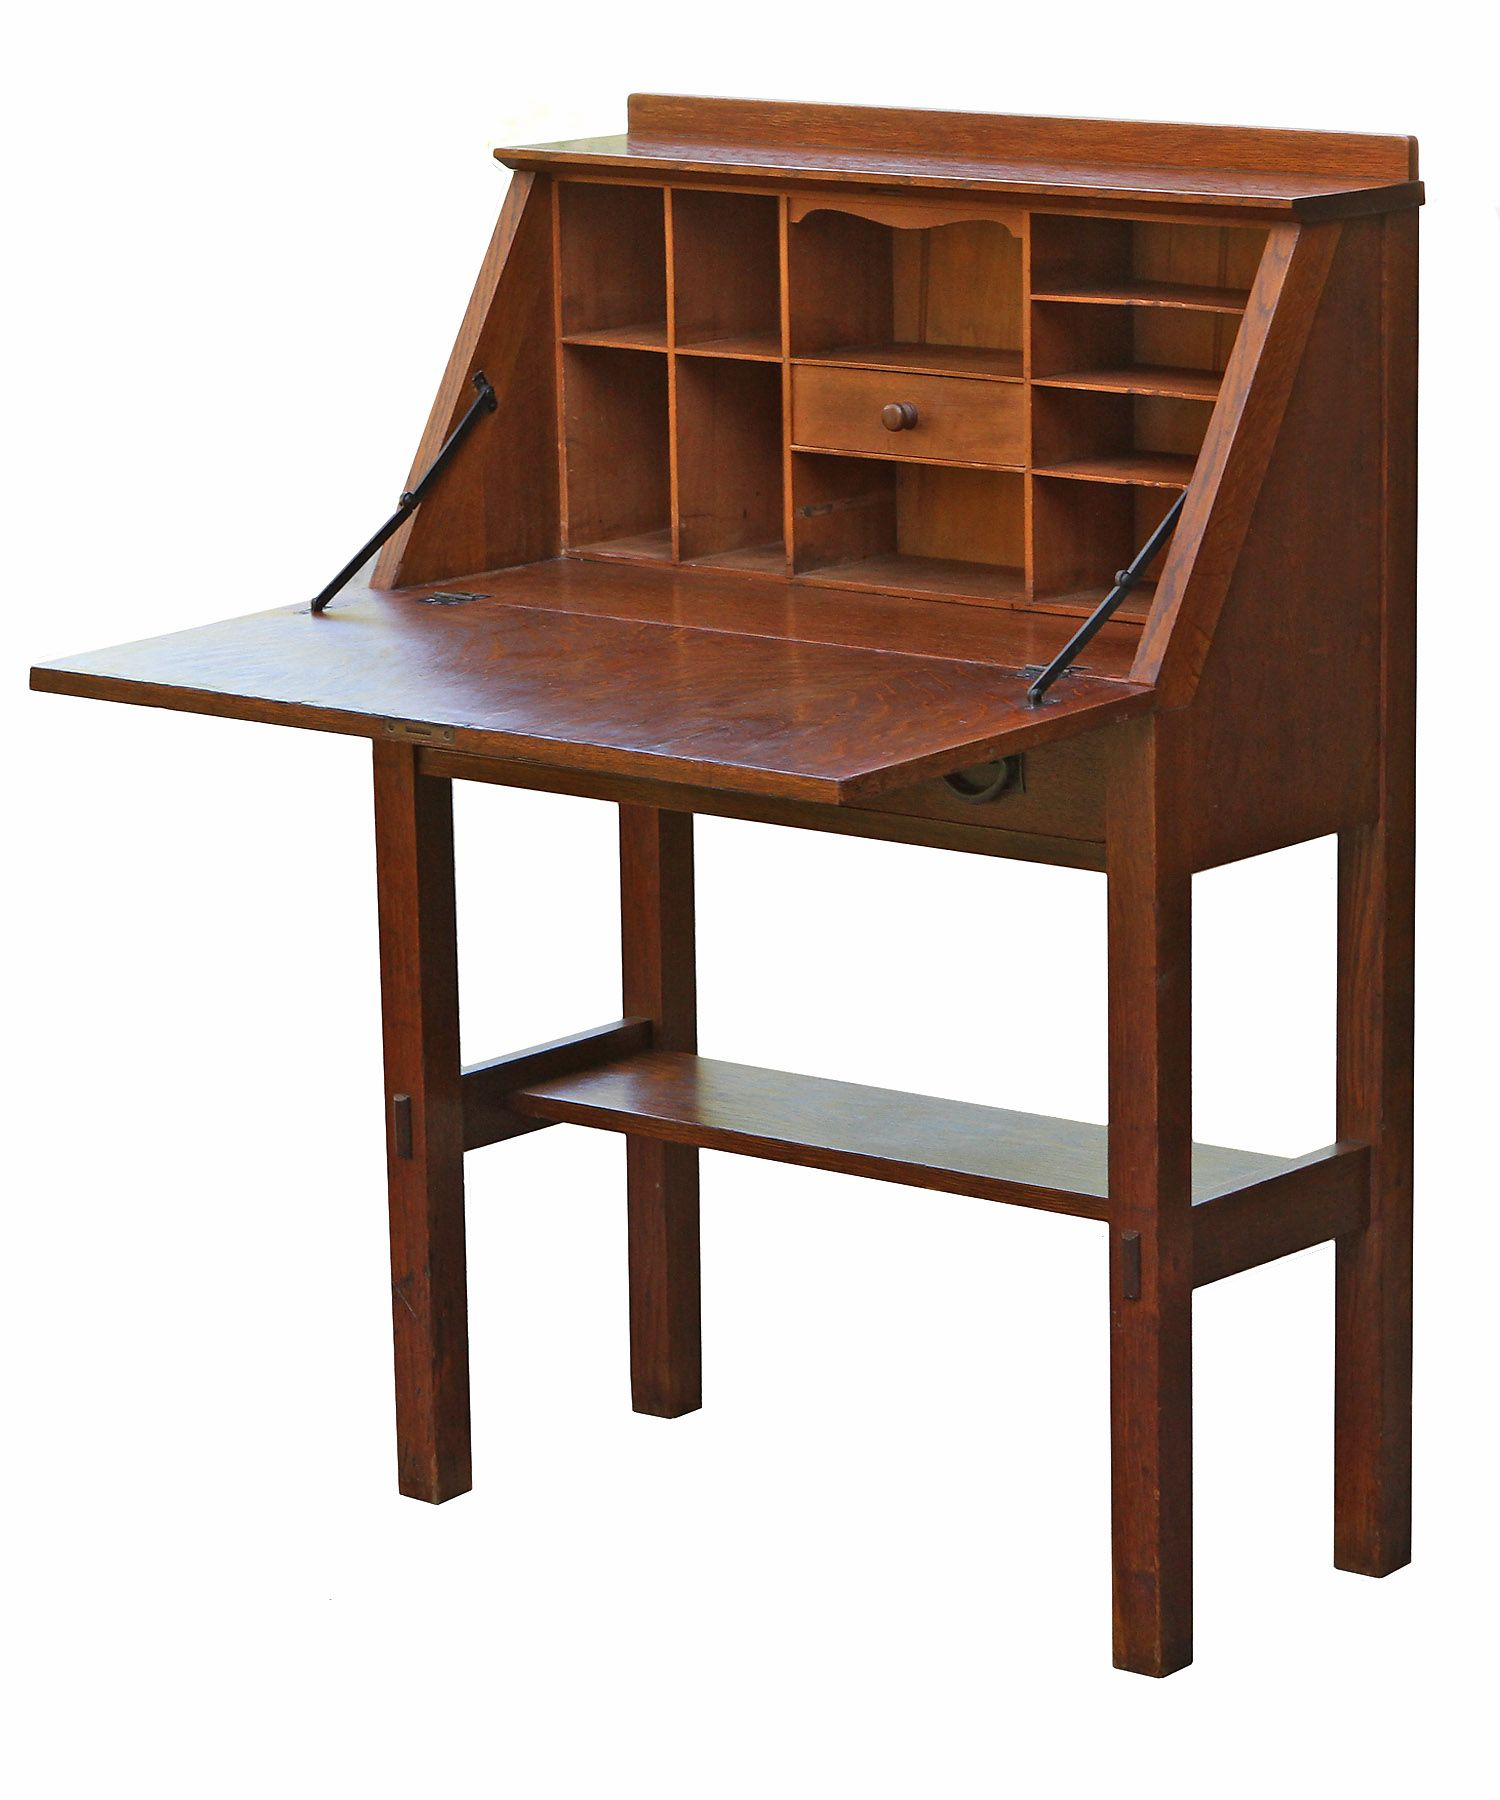 Stickley Drop Leaf Secretary Desk C 1910 Open Drop Down Desk